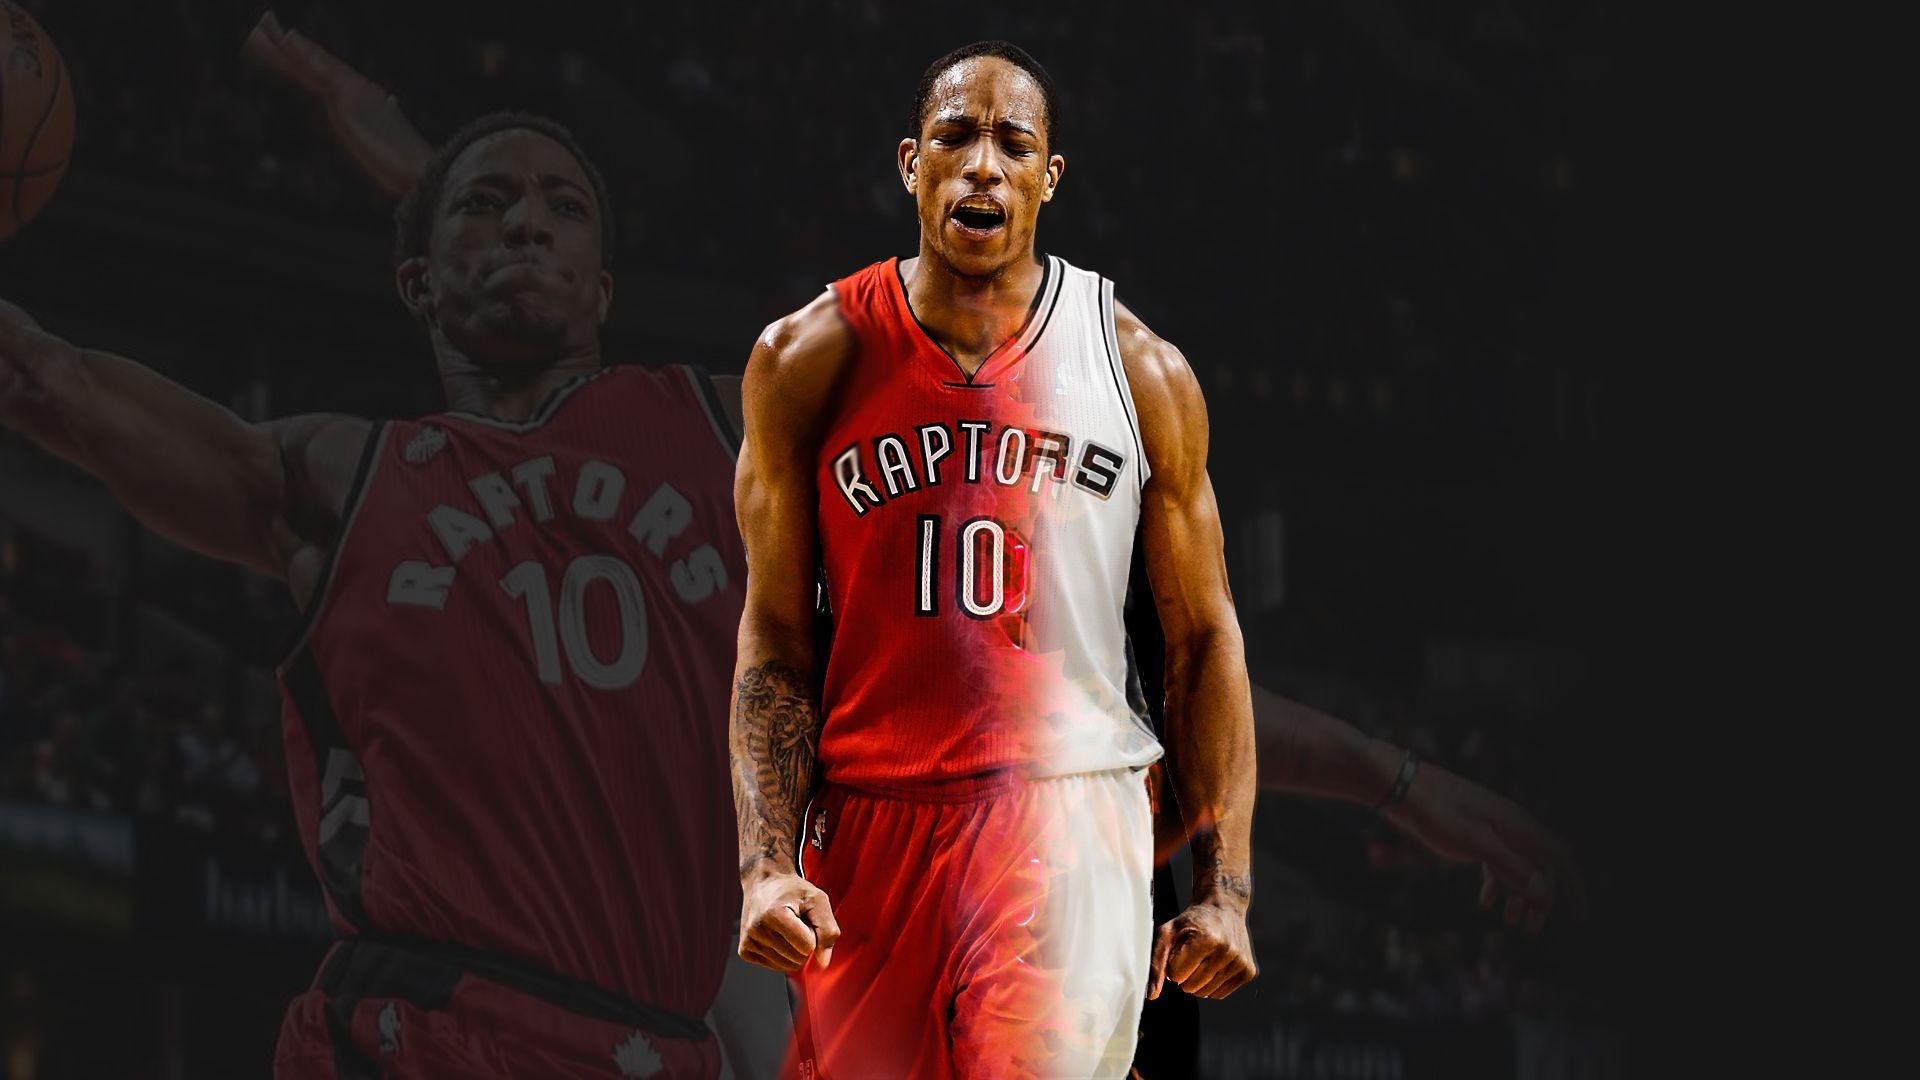 Sports World by JE: The winners and losers of the Kawhi Leonard trade